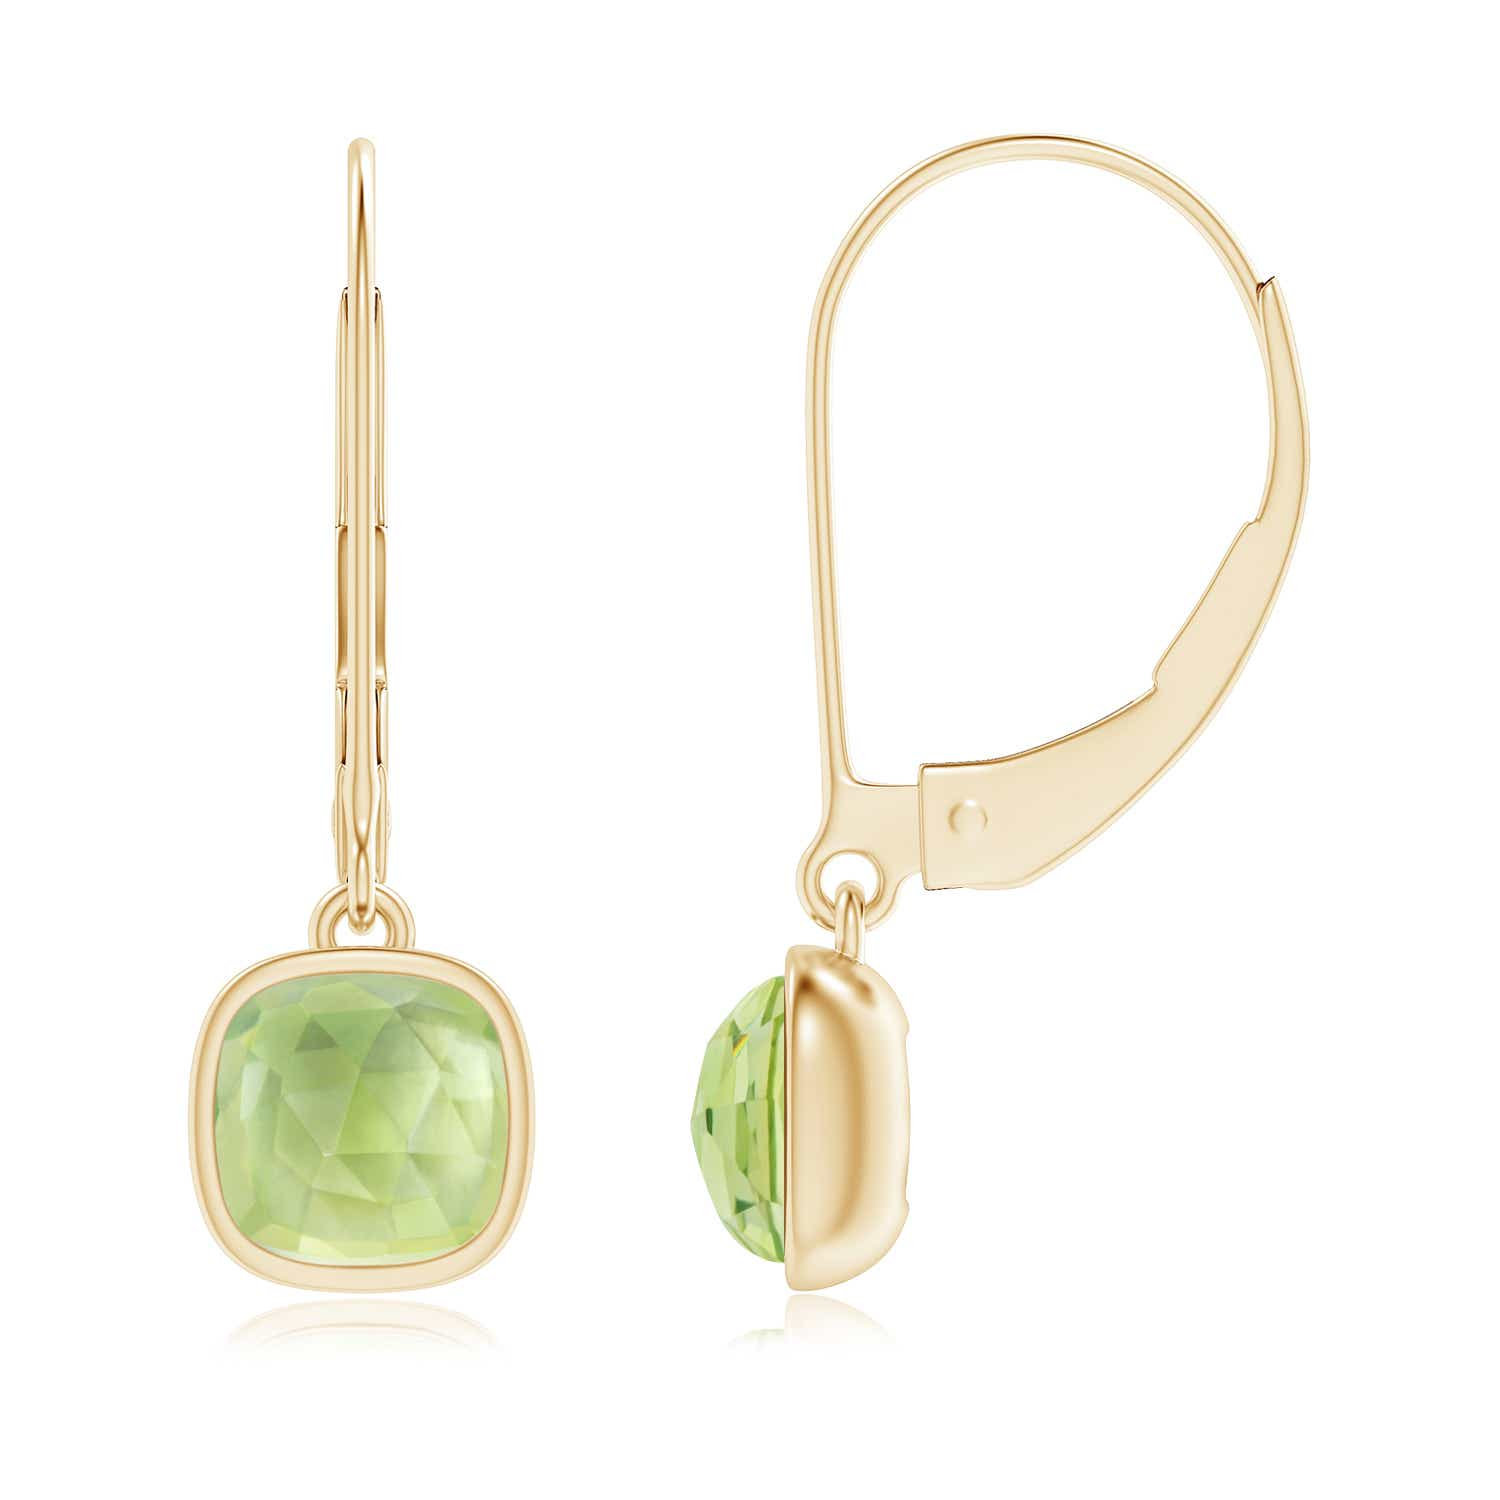 Angara Solitaire Peridot Earrings in White Gold XzC2cosC